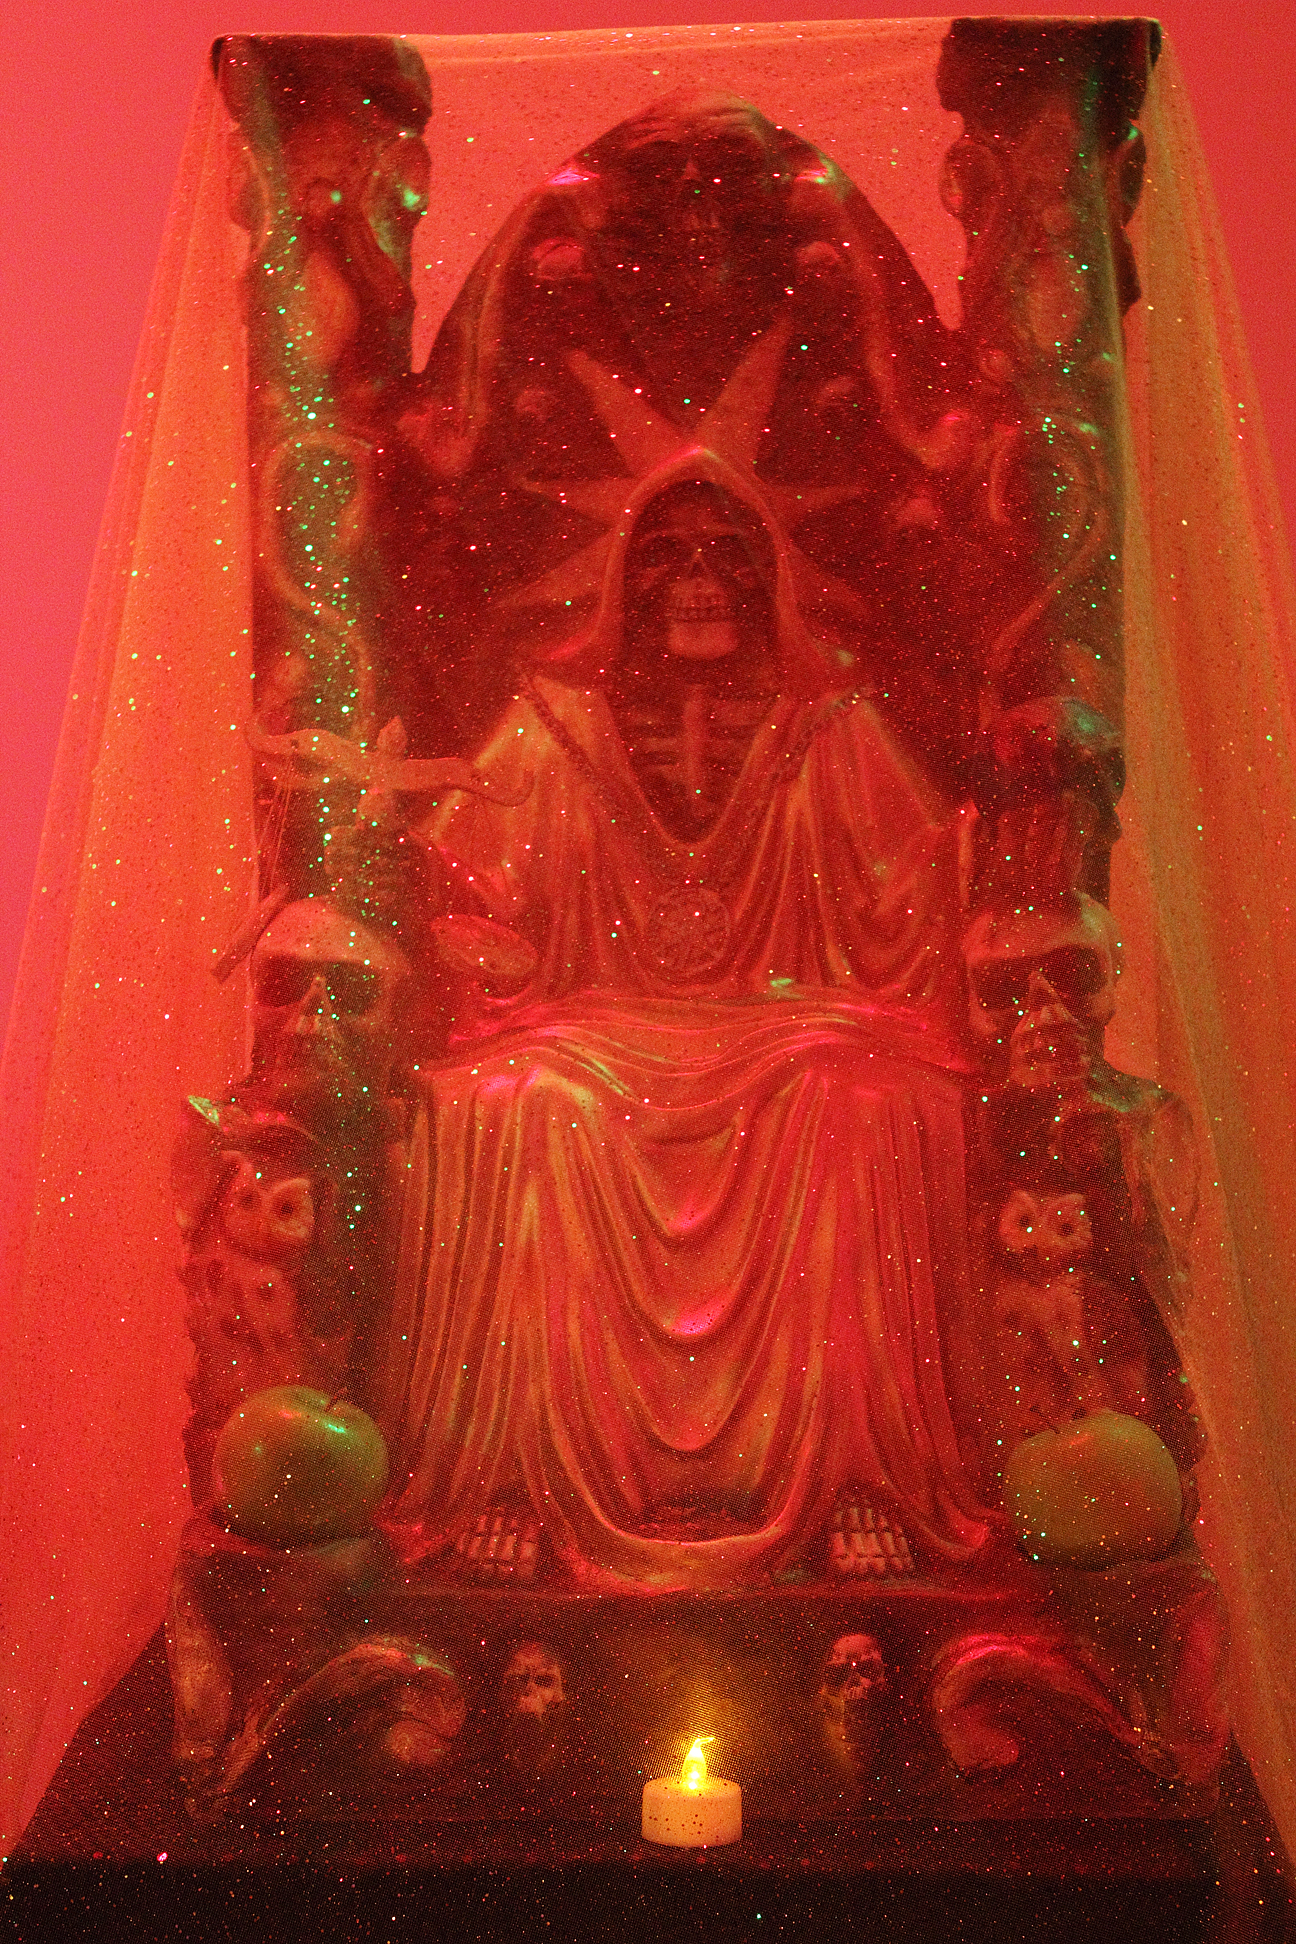 (above) The two photos are details of the first gallery's alter scene. The top one is a depiction of Saint Death.